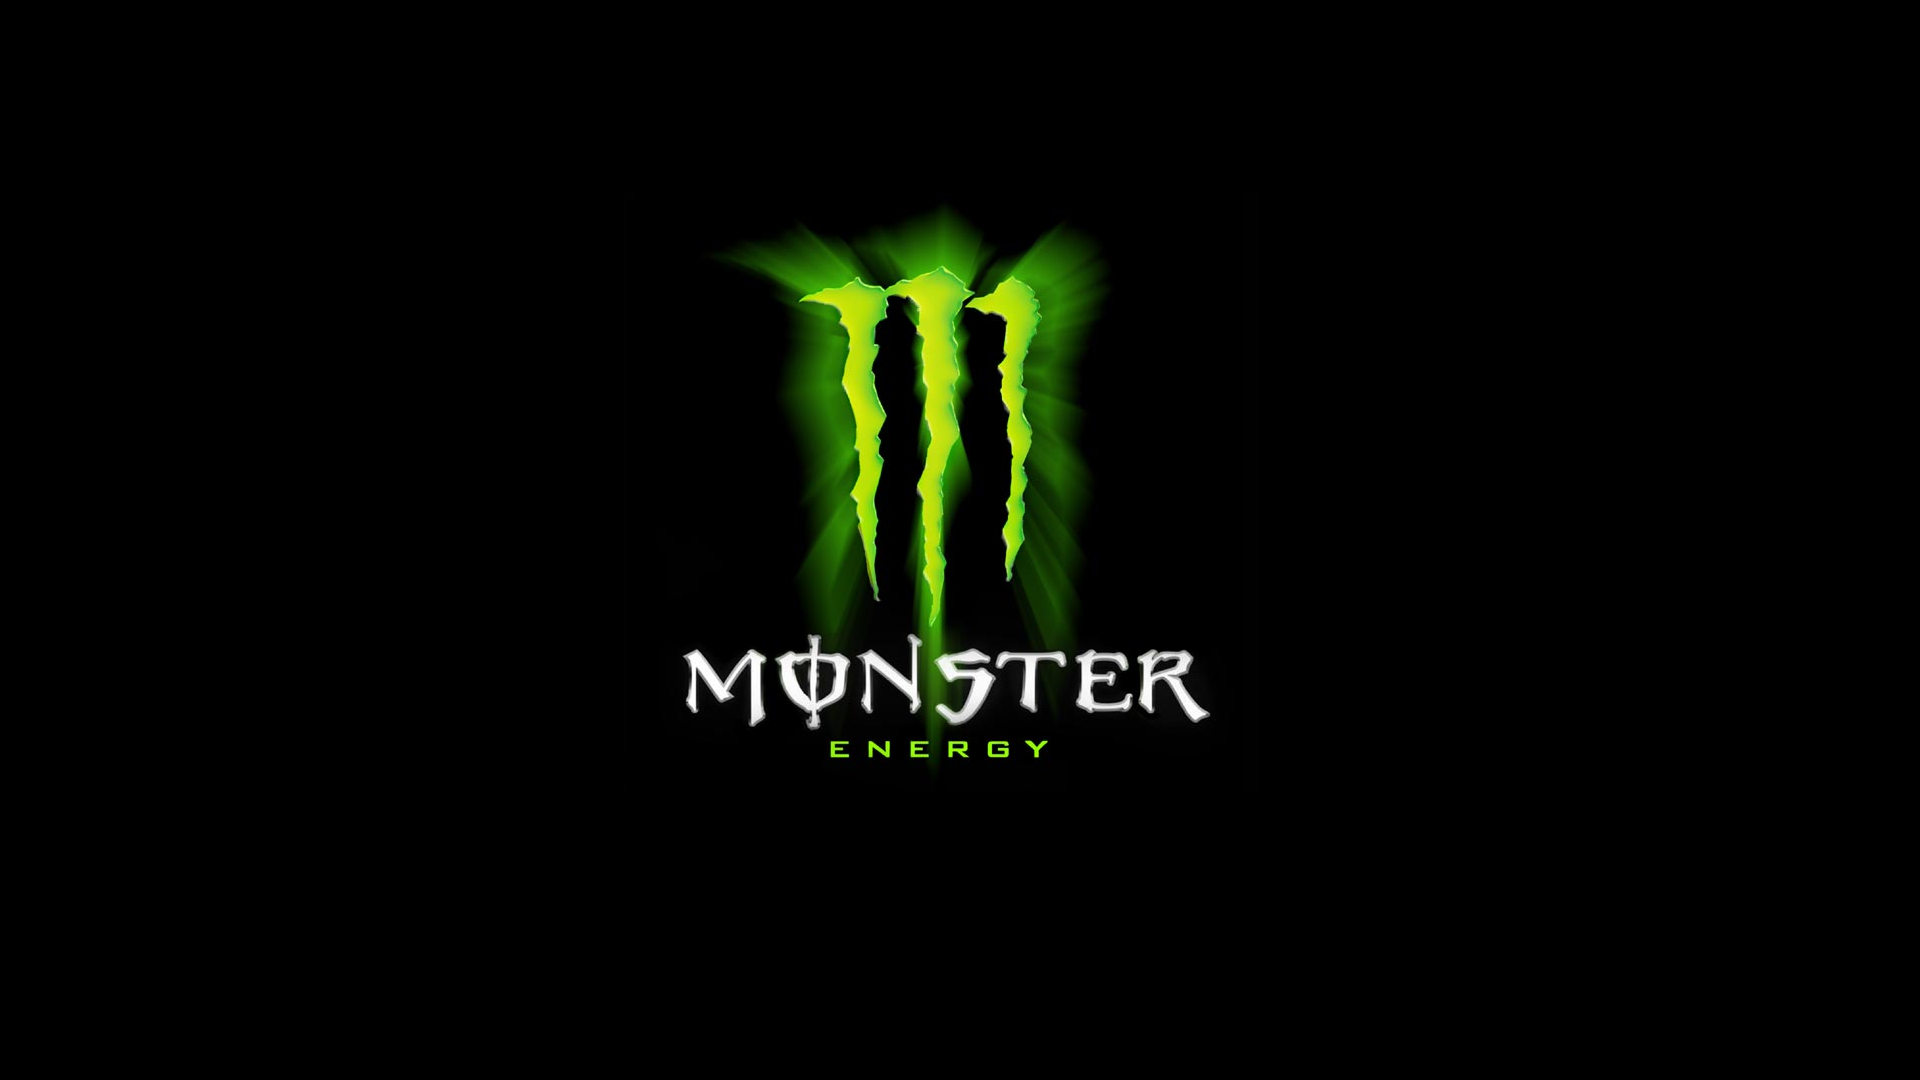 Monster Energy - Logo Wallpapers Wallike.